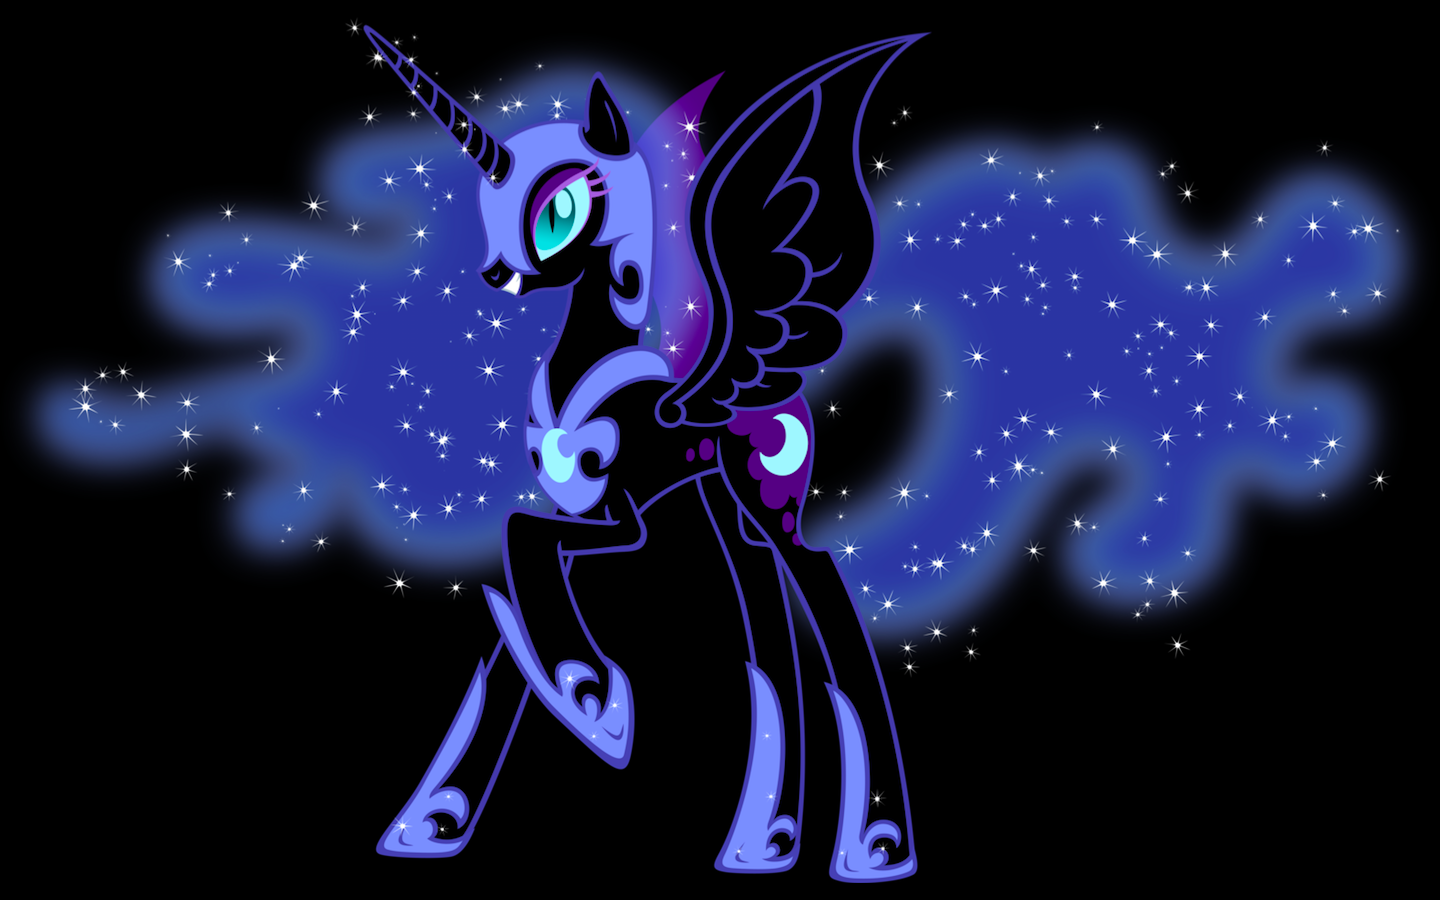 Hd wallpaper unicorn - Hd Wallpaper Background Id 671617